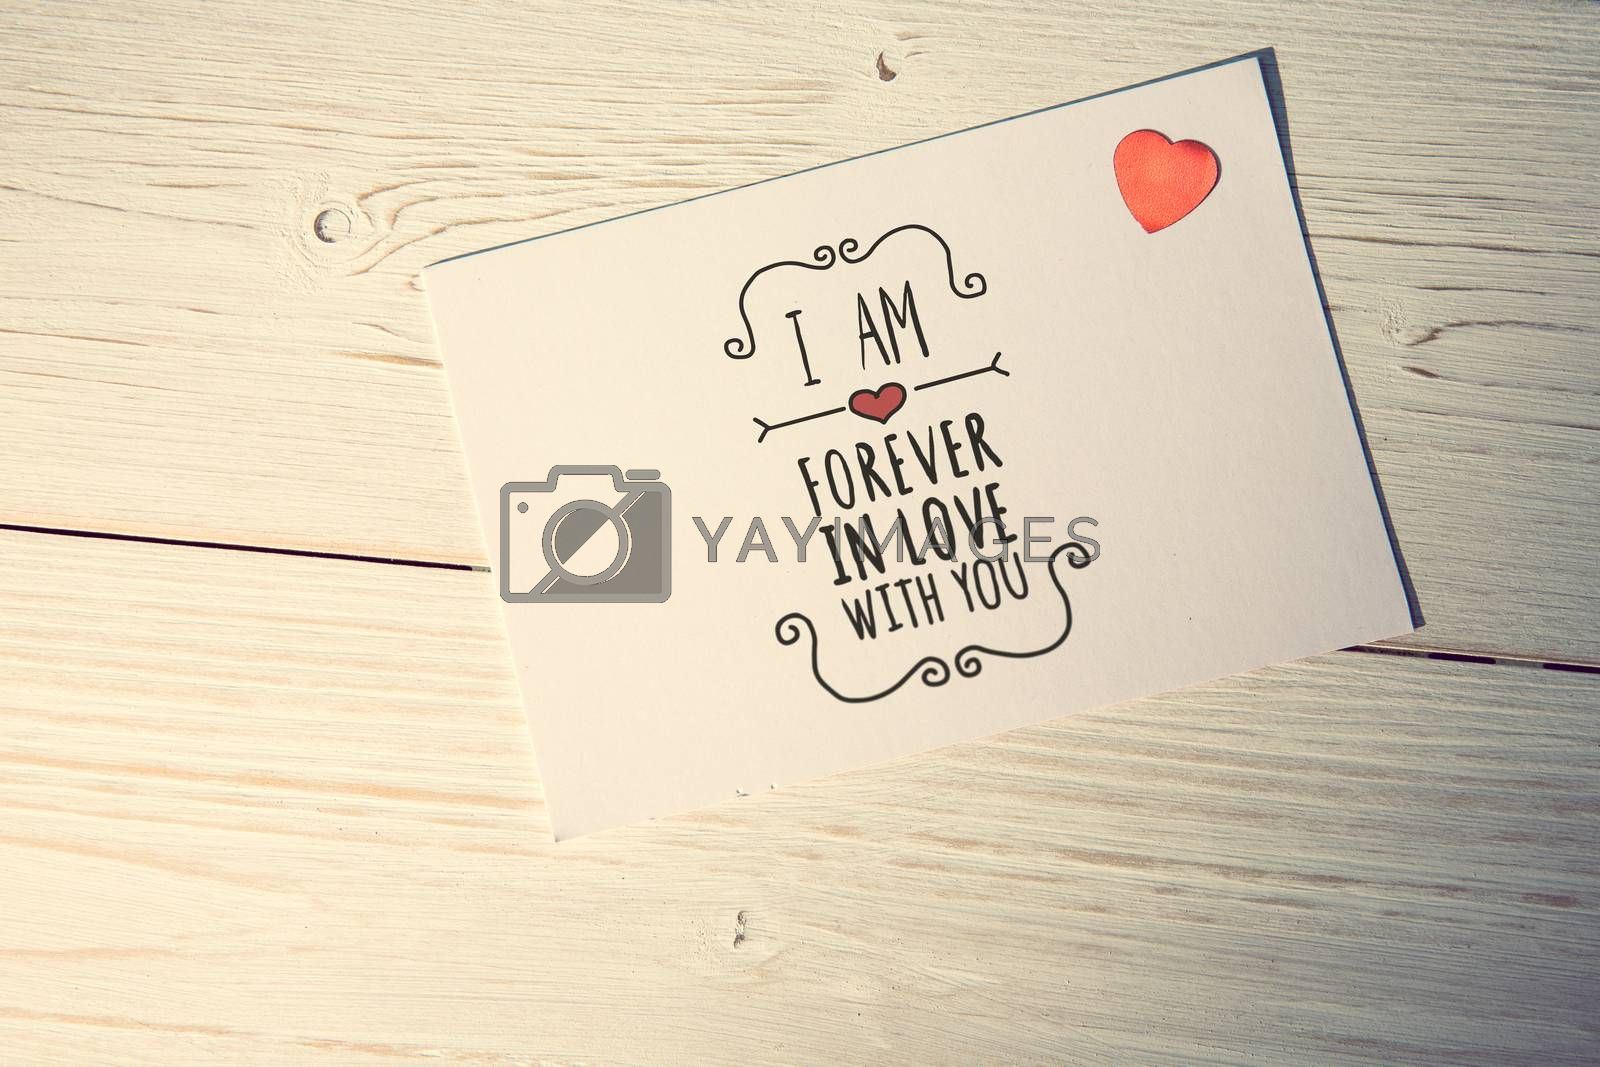 Valentines message against love letter